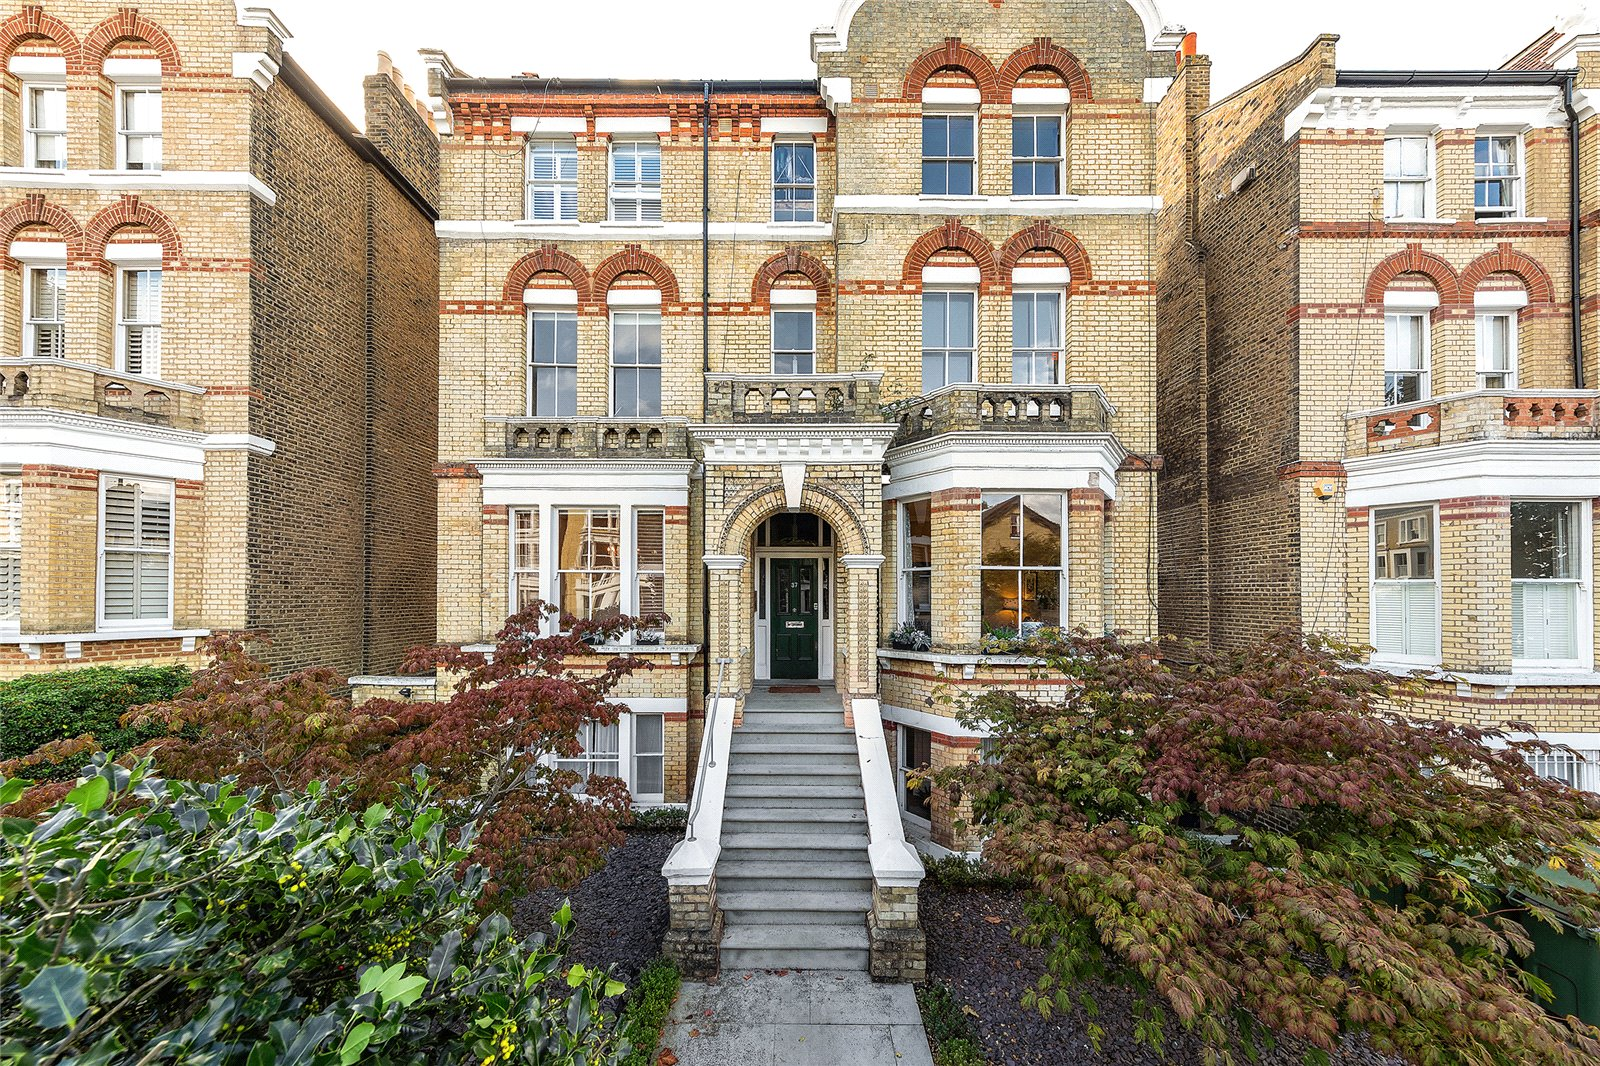 Large house in clapham